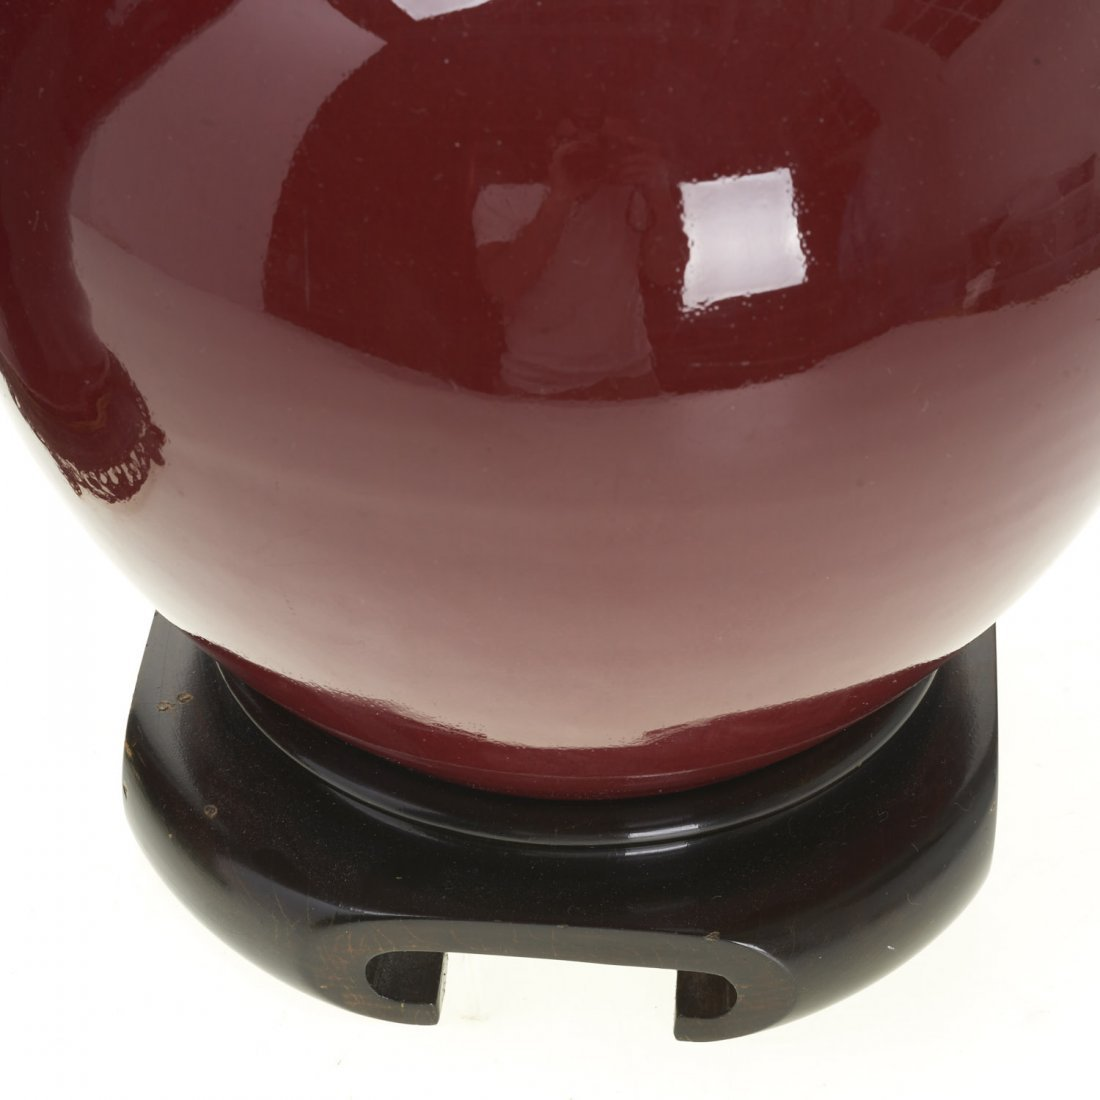 (2) Chinese porcelain oxblood vase lamps - 3